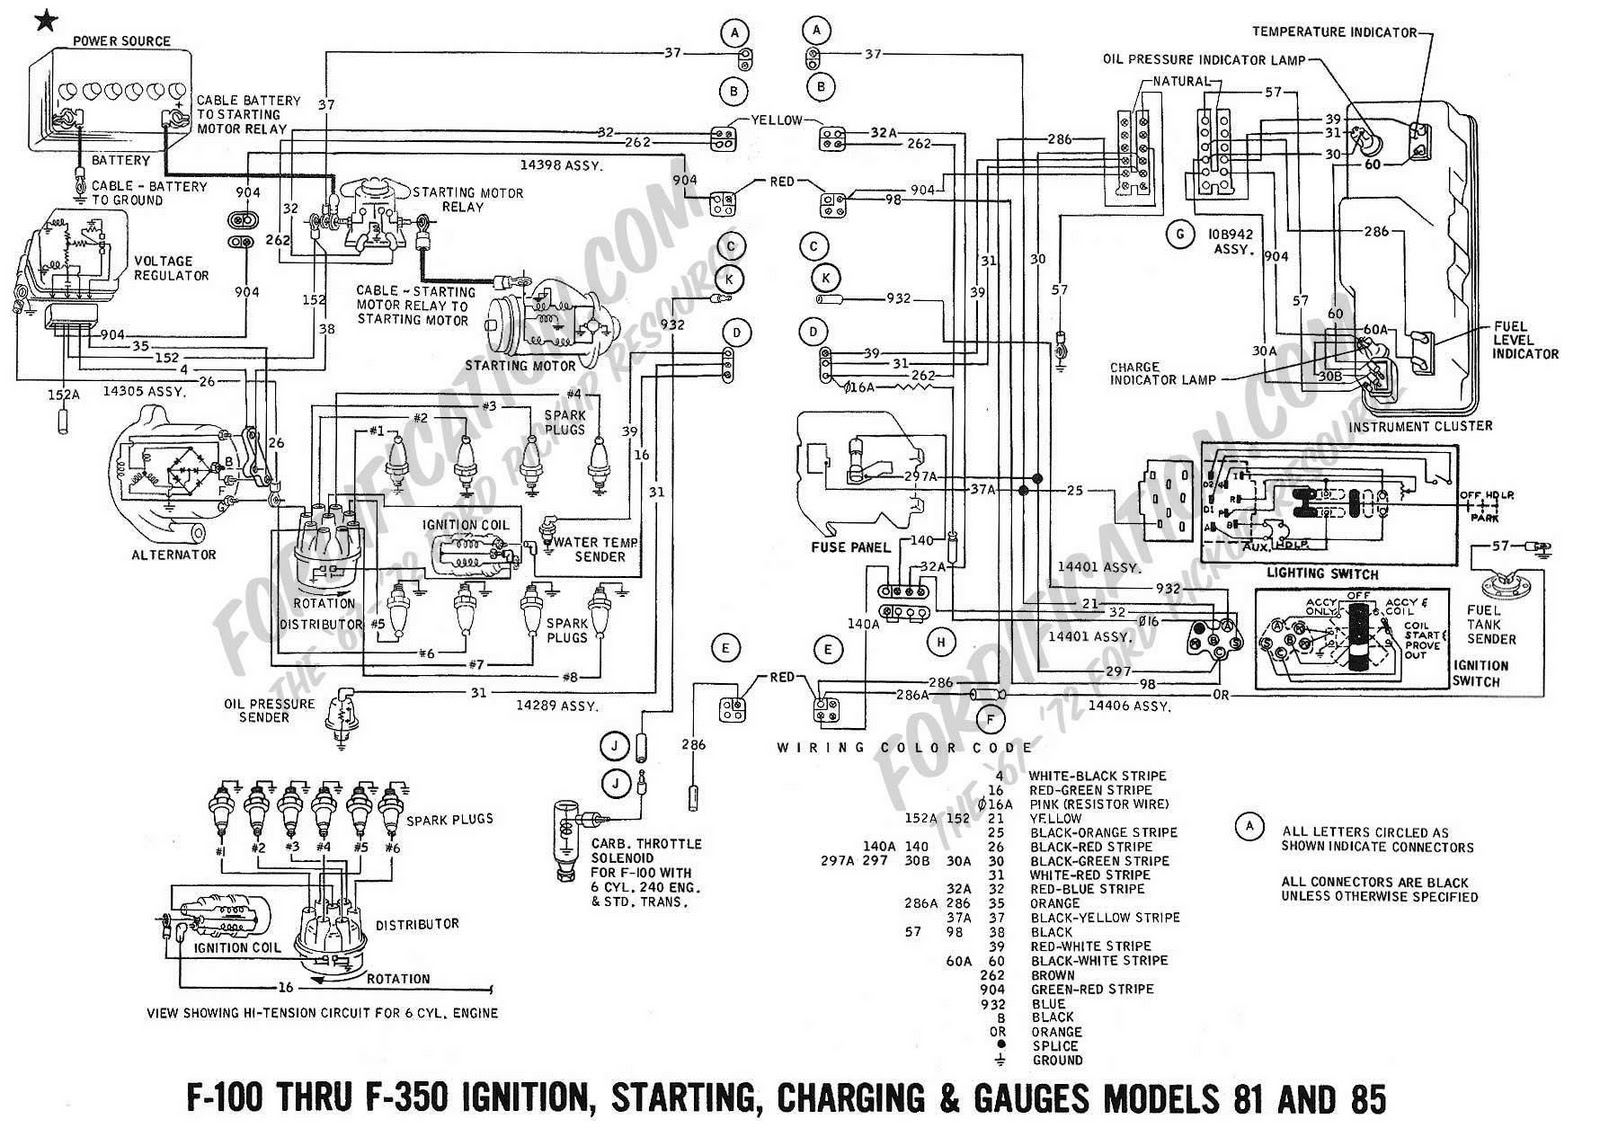 1964 Impala Wiring Diagram Coil Electrical House 1962 1965 Ford Truck F Ignition Starting Charging And Rh Rujjiy Tripa Co 2012 Radio